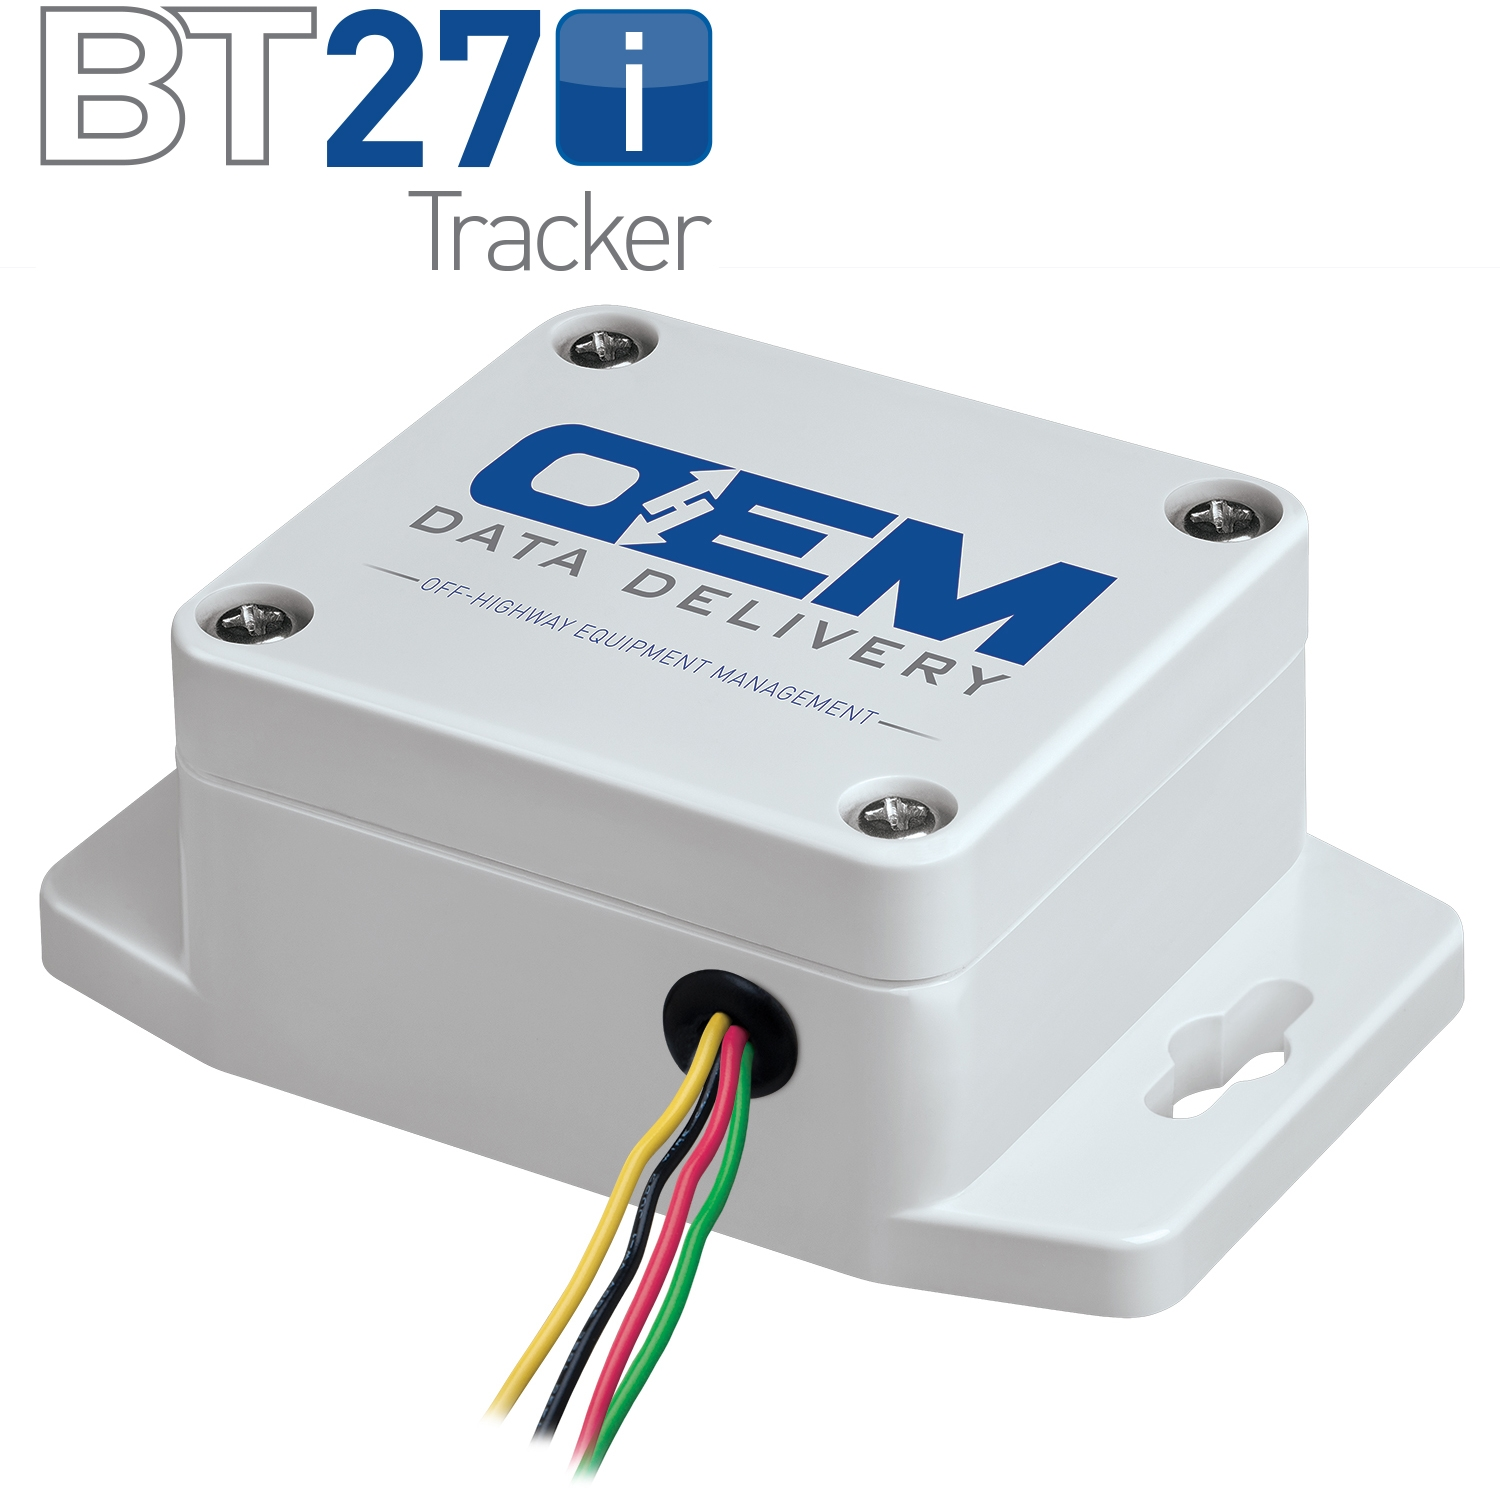 BT27i Tracker with Logo